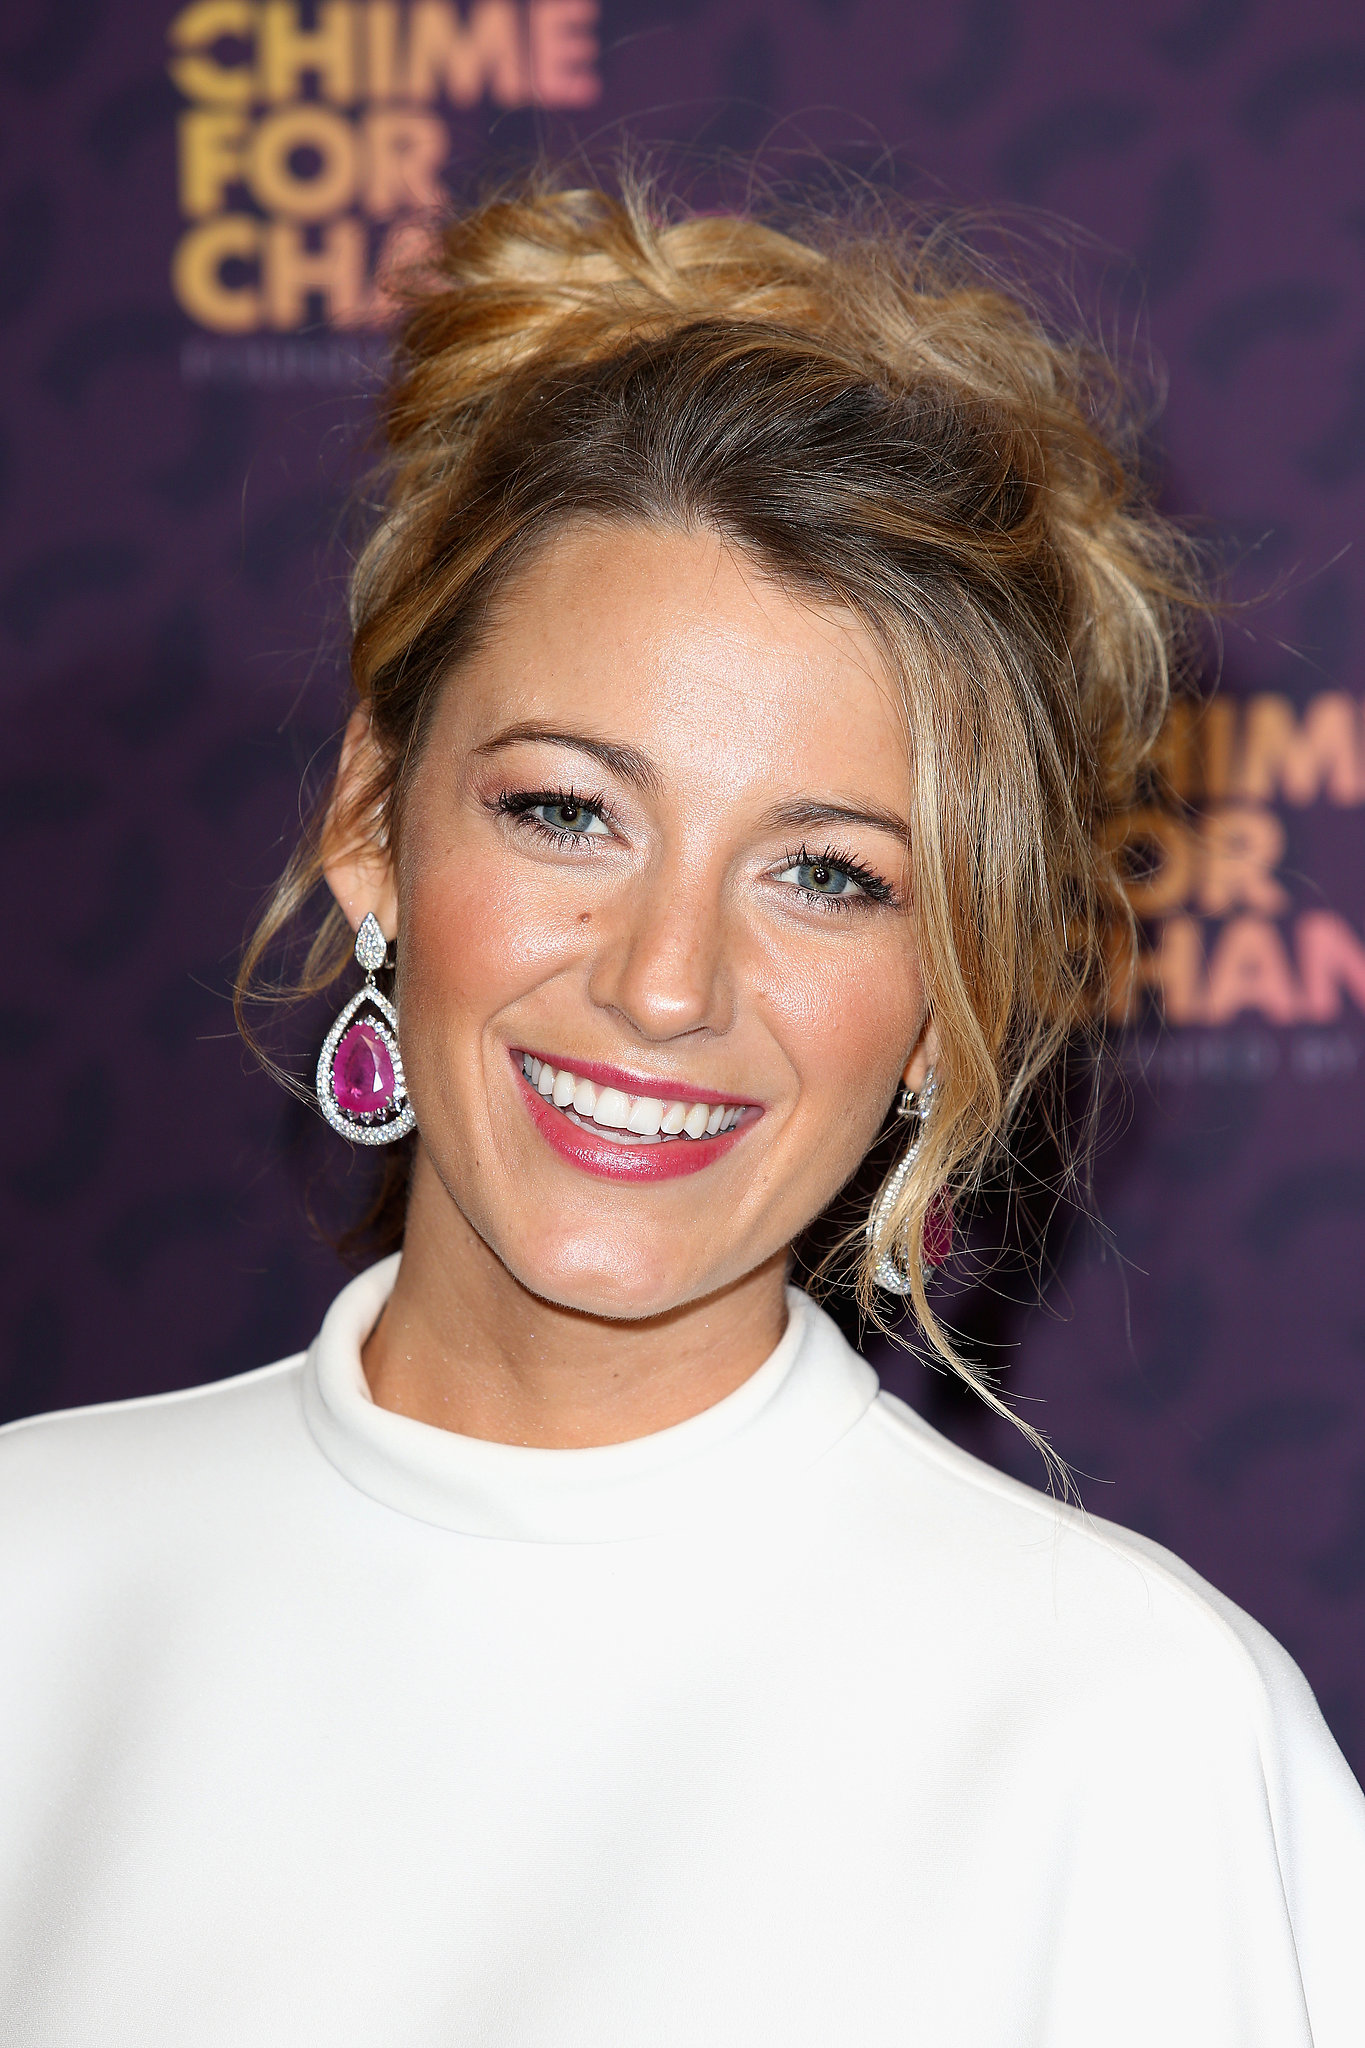 Blake Lively went for a cool and casual hairstyle and a rosy pink lip for her appearance at the Chime For Change concert.